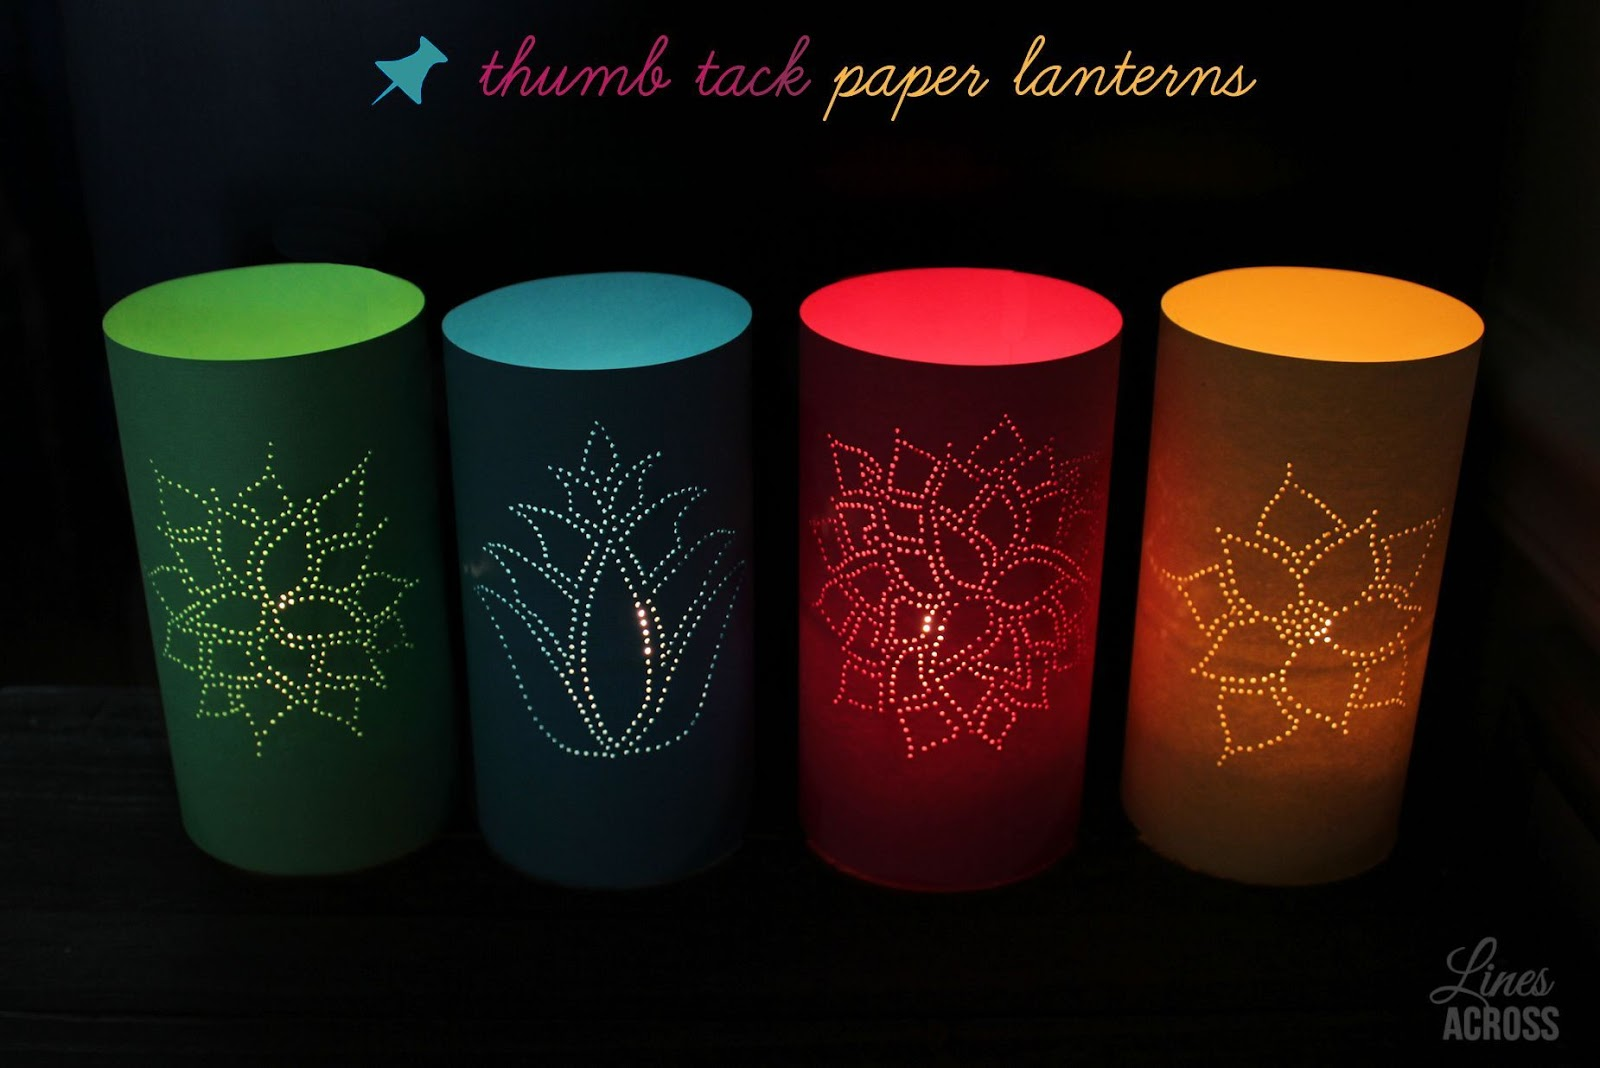 Thumb tack paper lanterns lines across